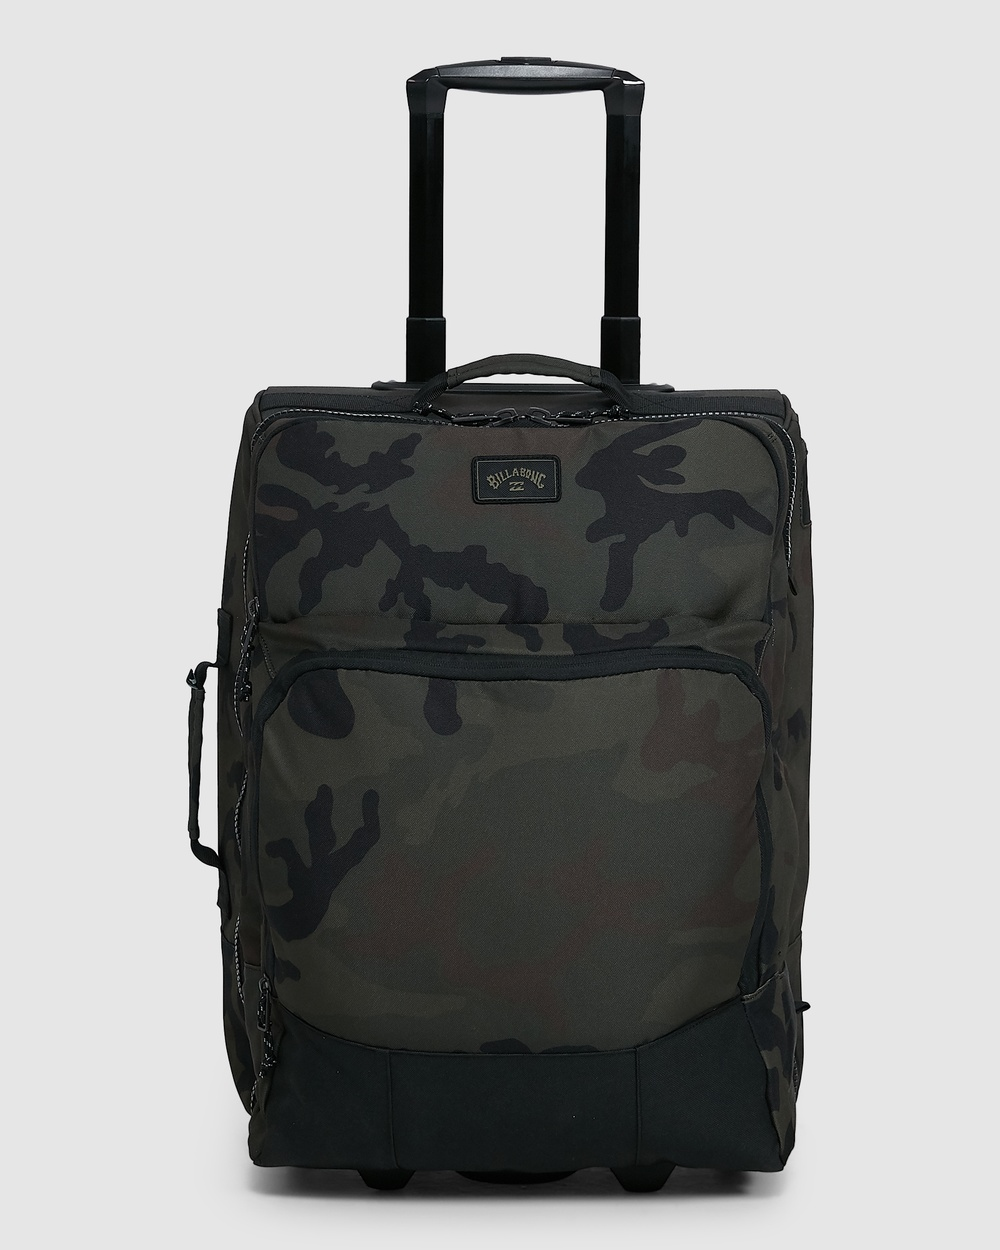 Billabong Booster Carry On Travel and Luggage CAMO